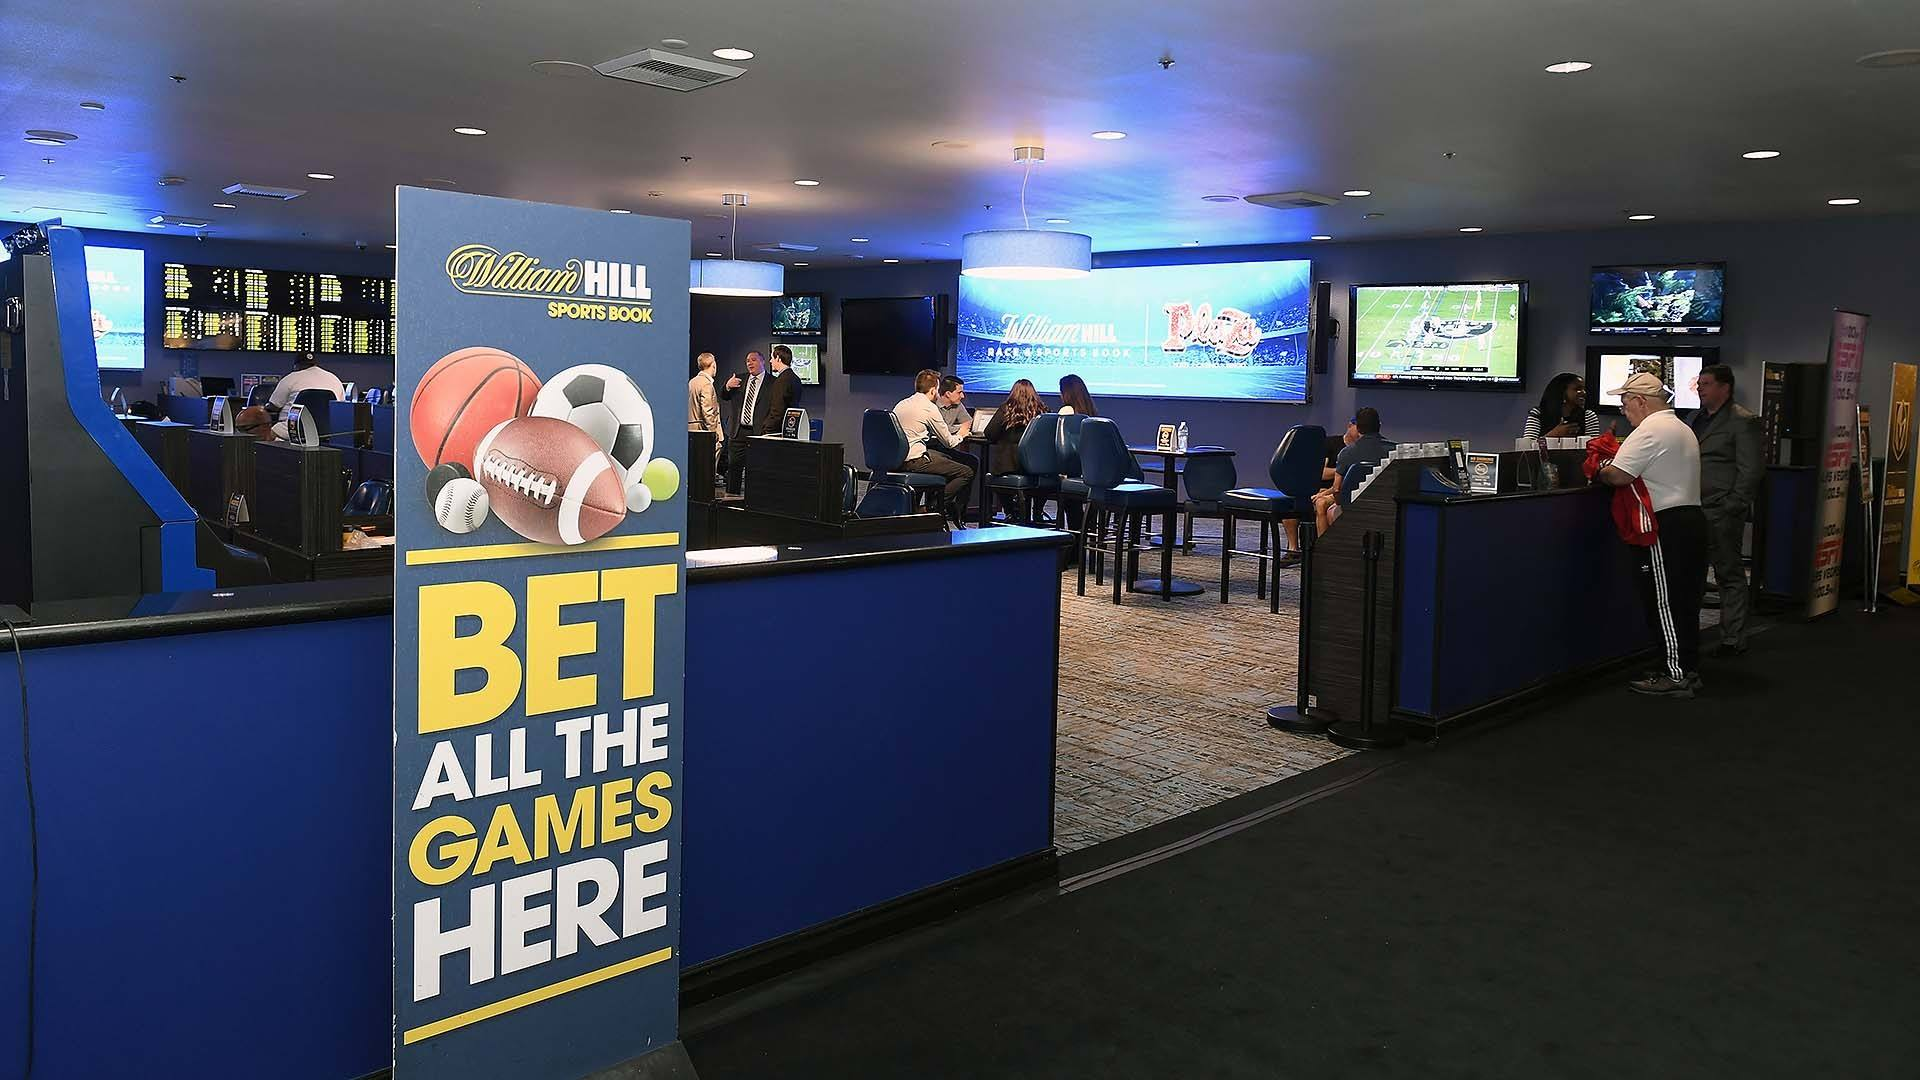 Activist hedge fund could pressure sale of William Hill.